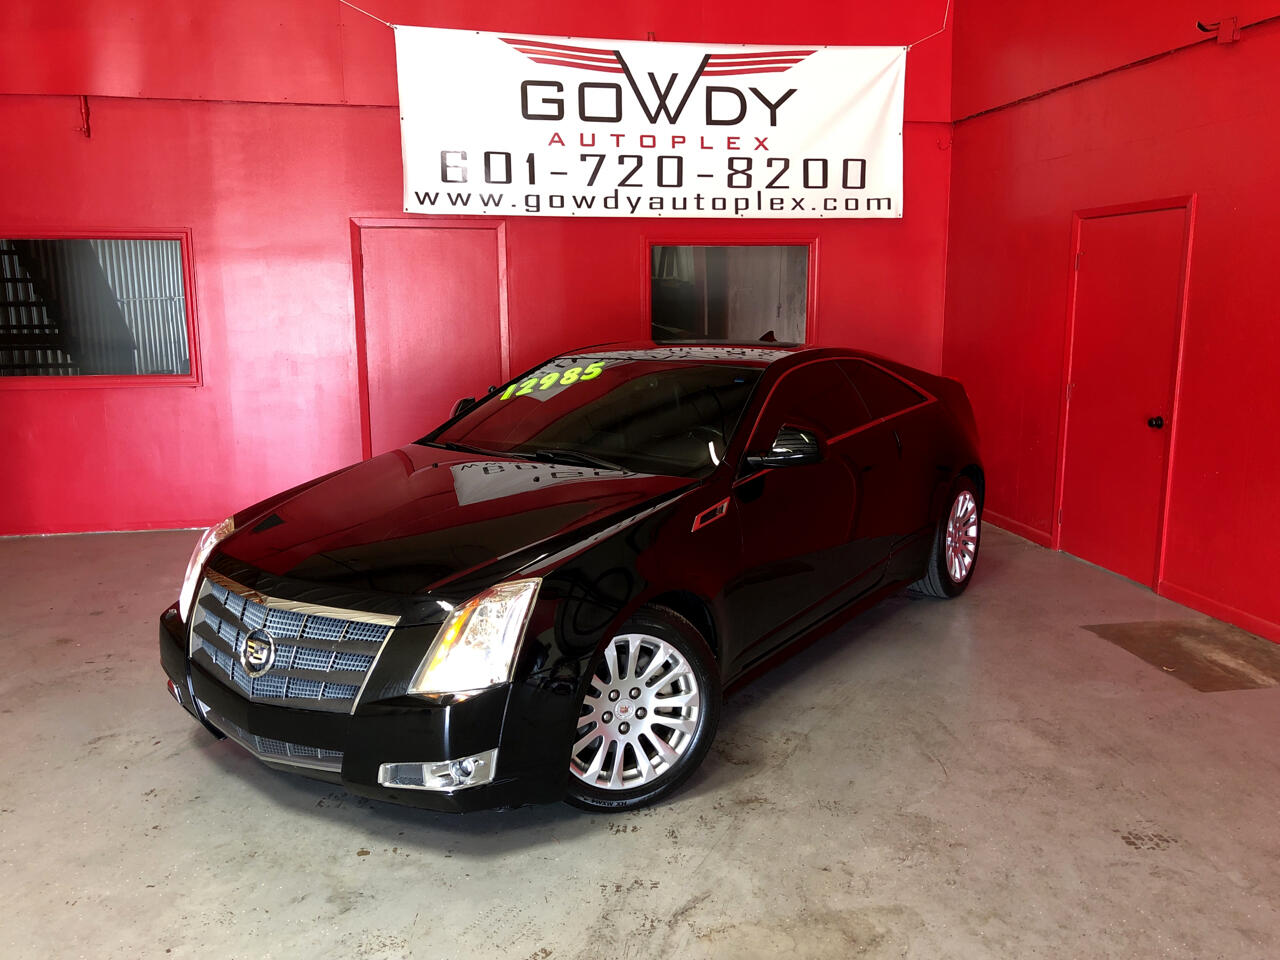 2011 Cadillac CTS Coupe 2dr Cpe Premium RWD